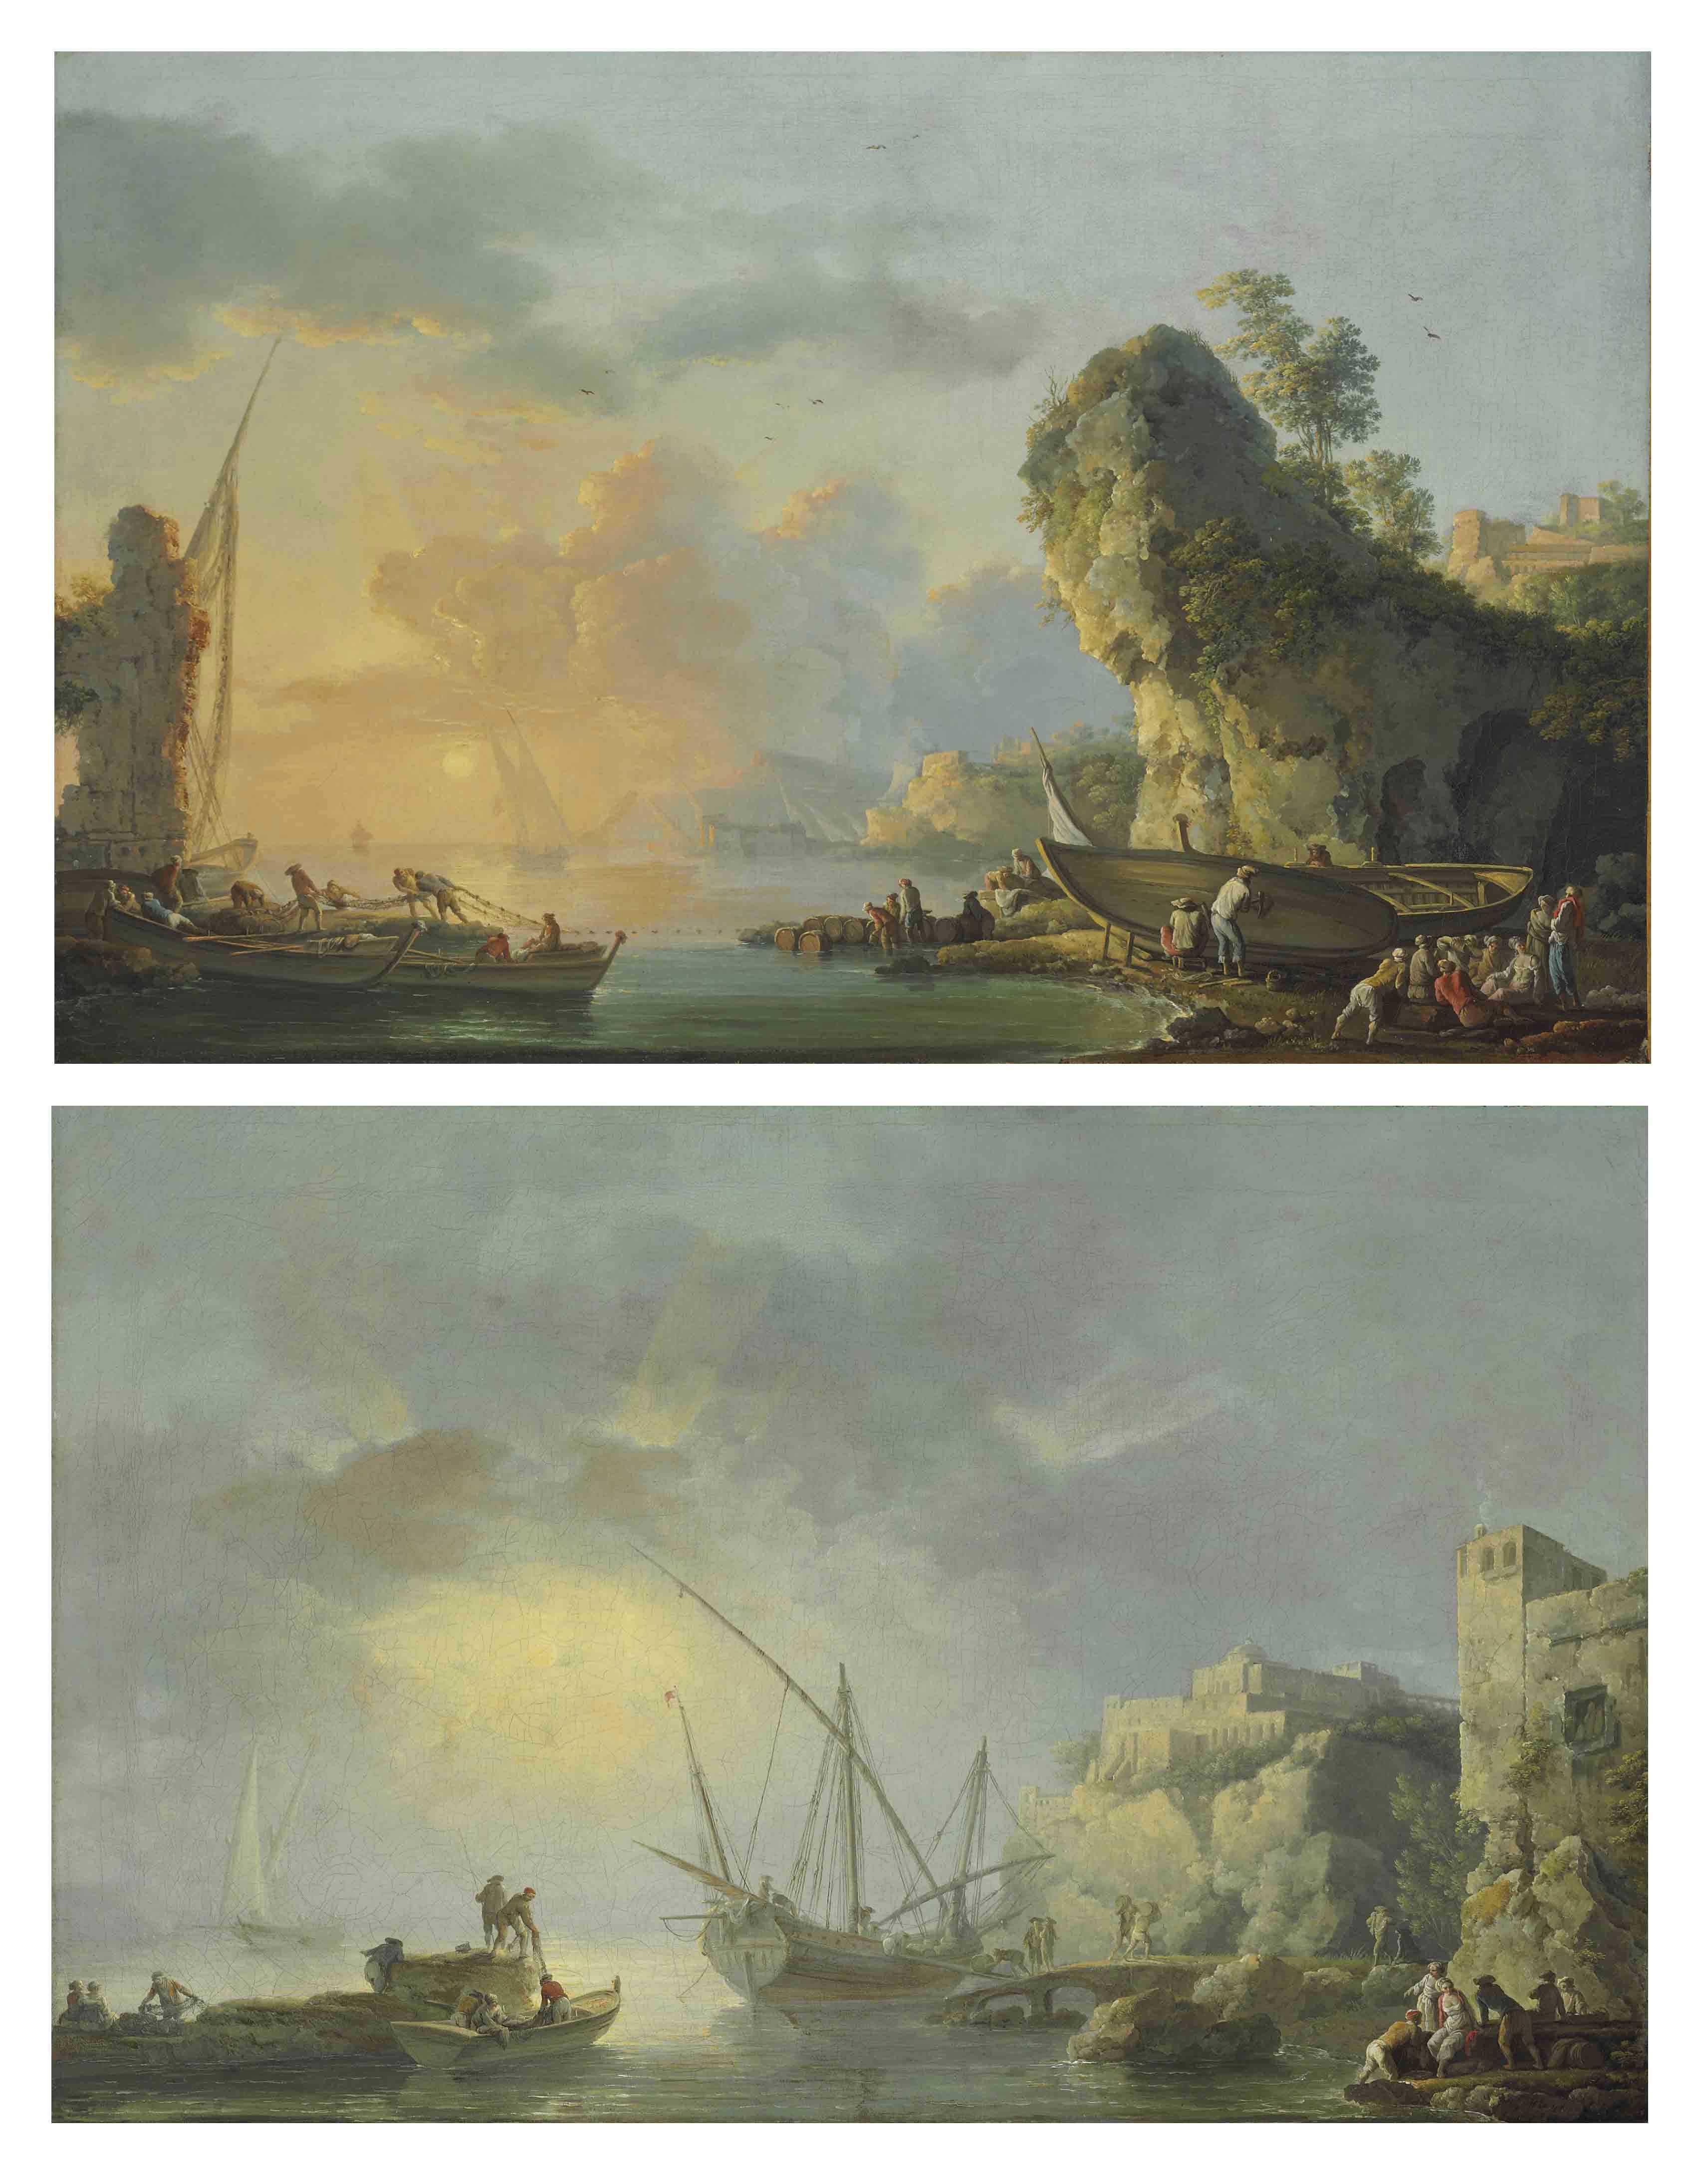 A harbor at dawn with fishermen embarking from the shore; and A harbor at dusk with fishermen tying up nets and coming ashore